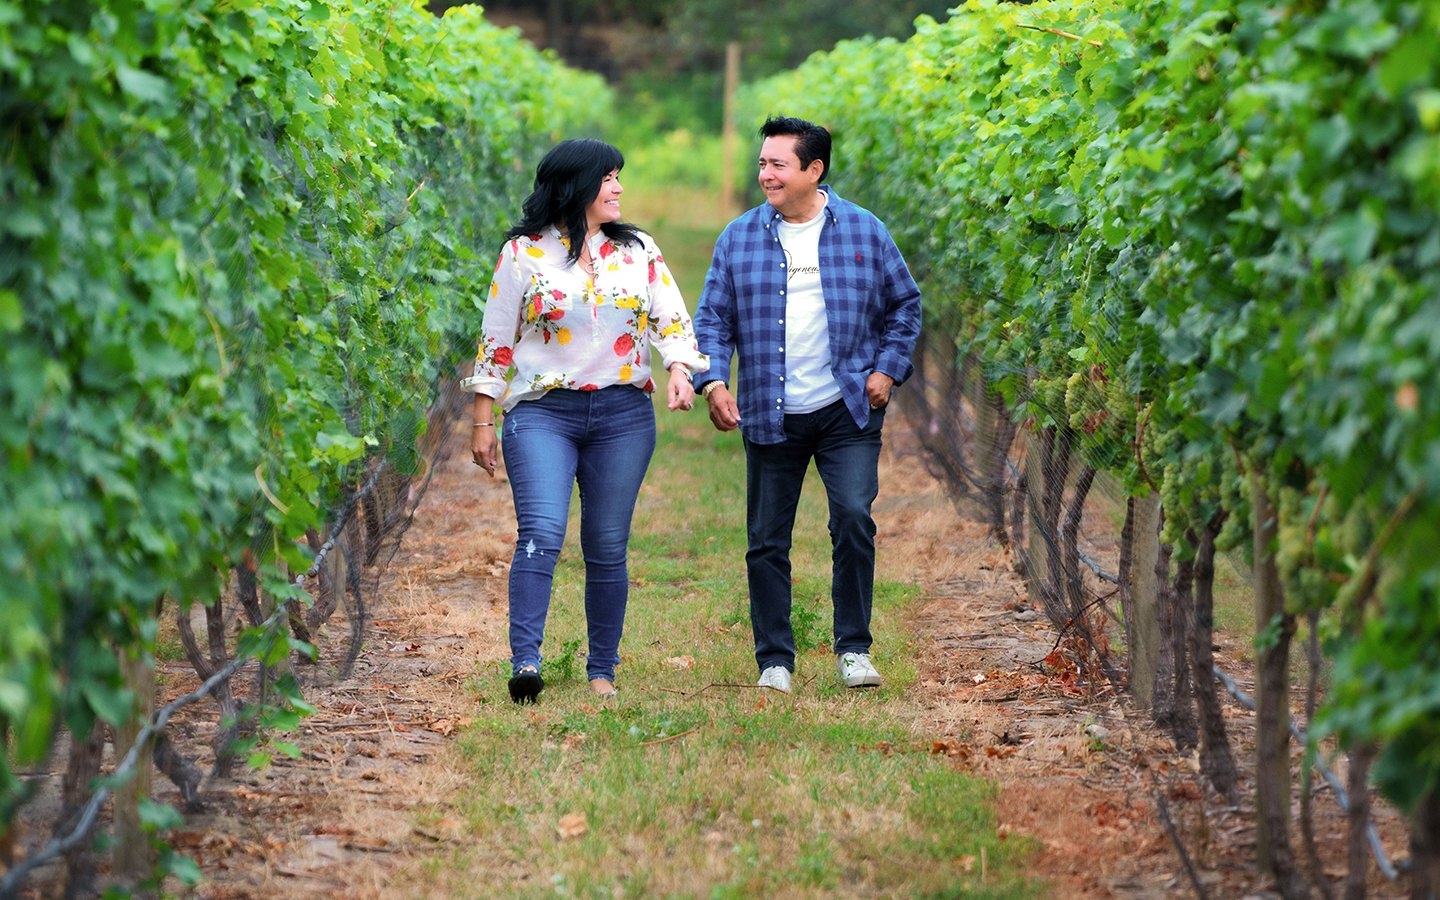 http://spatulamedia.ca/wp-content/uploads/2019/05/Robert-and-Bernice-Louie-in-vineyard.jpg